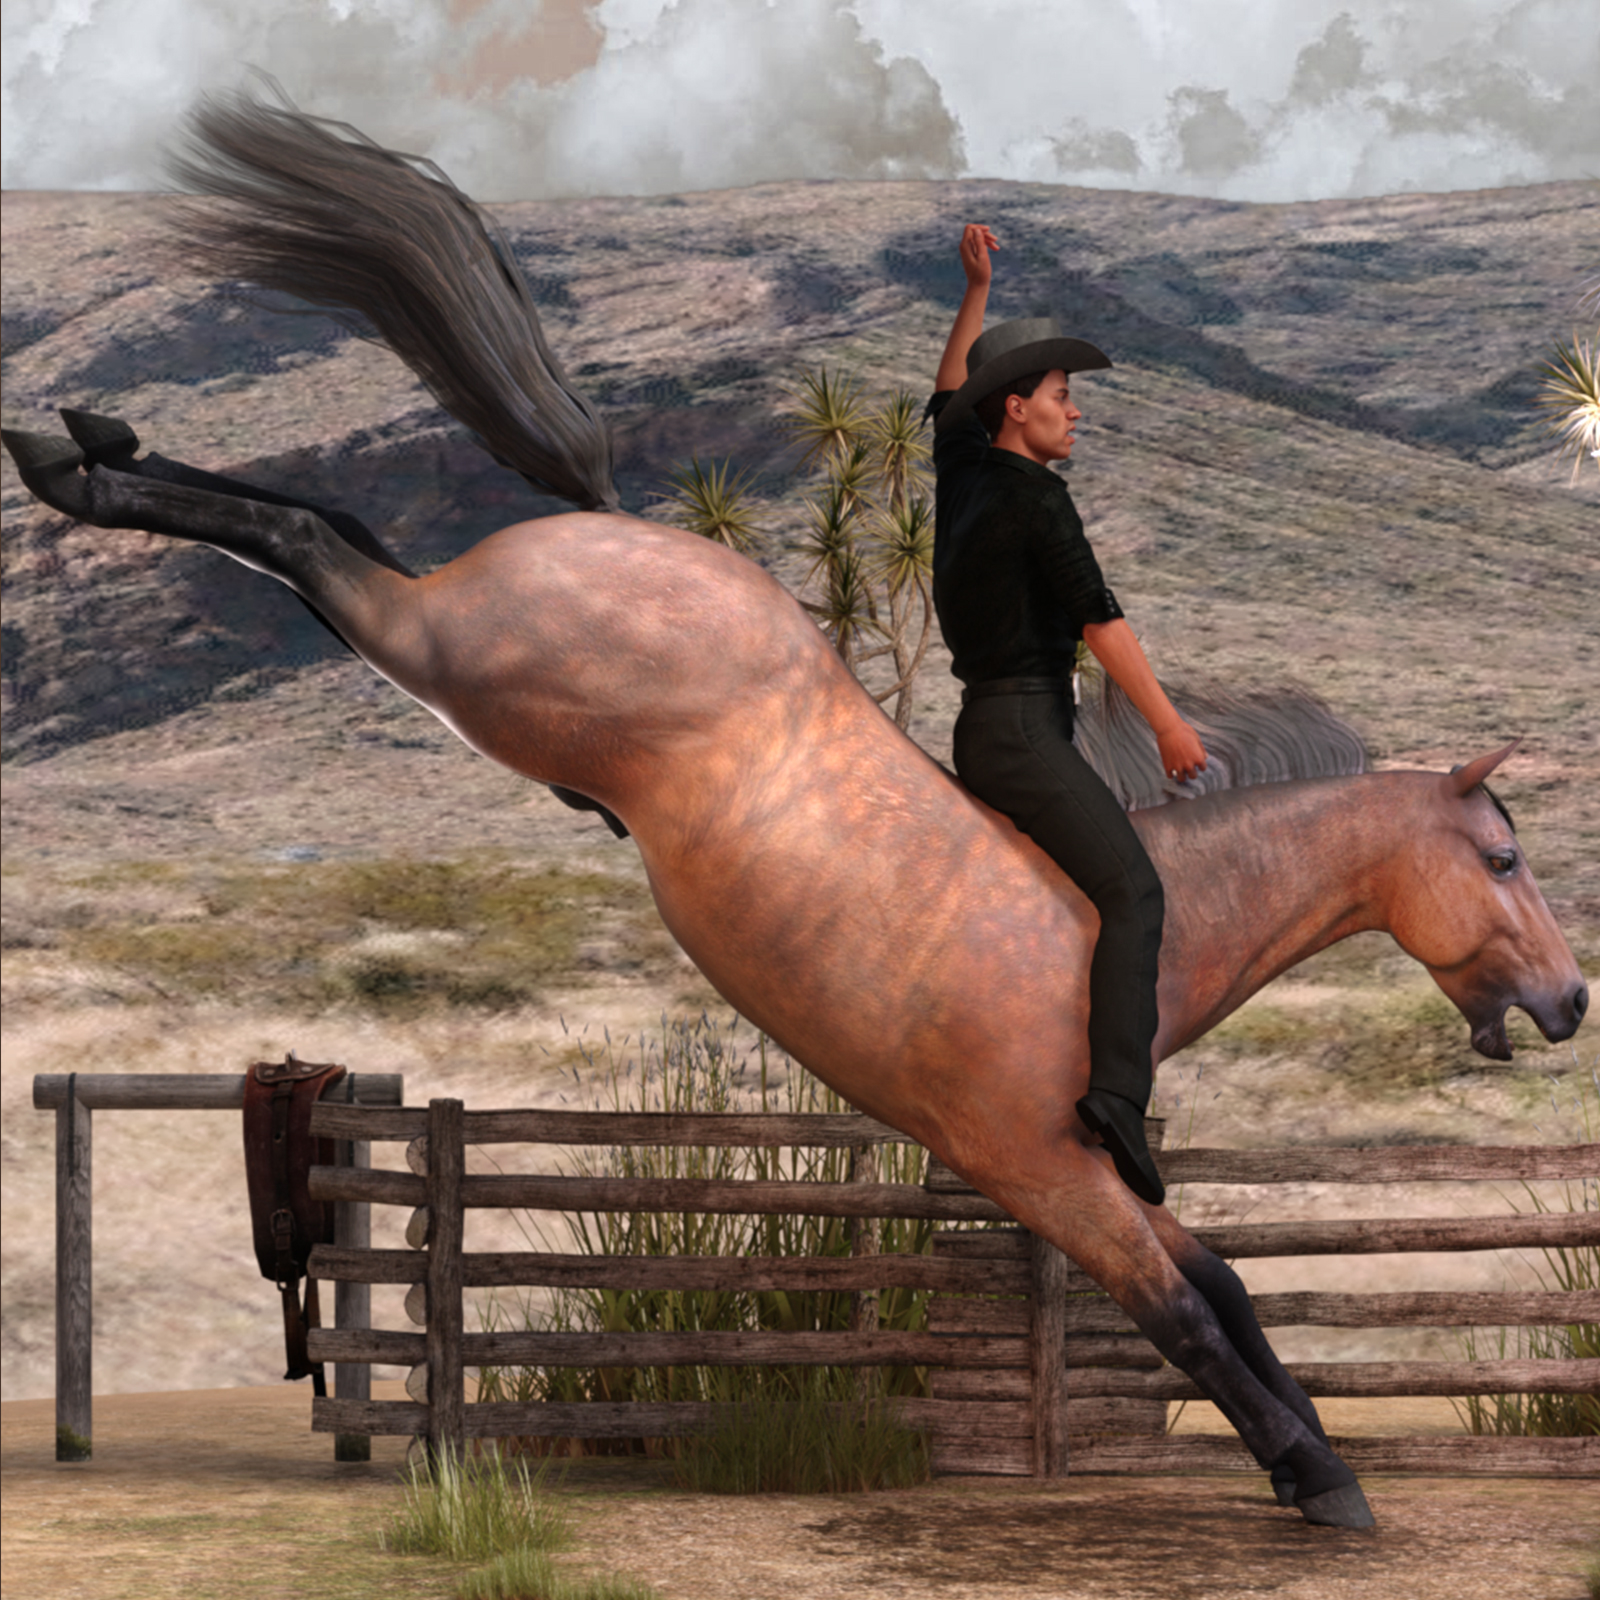 Horse And Rider Poses